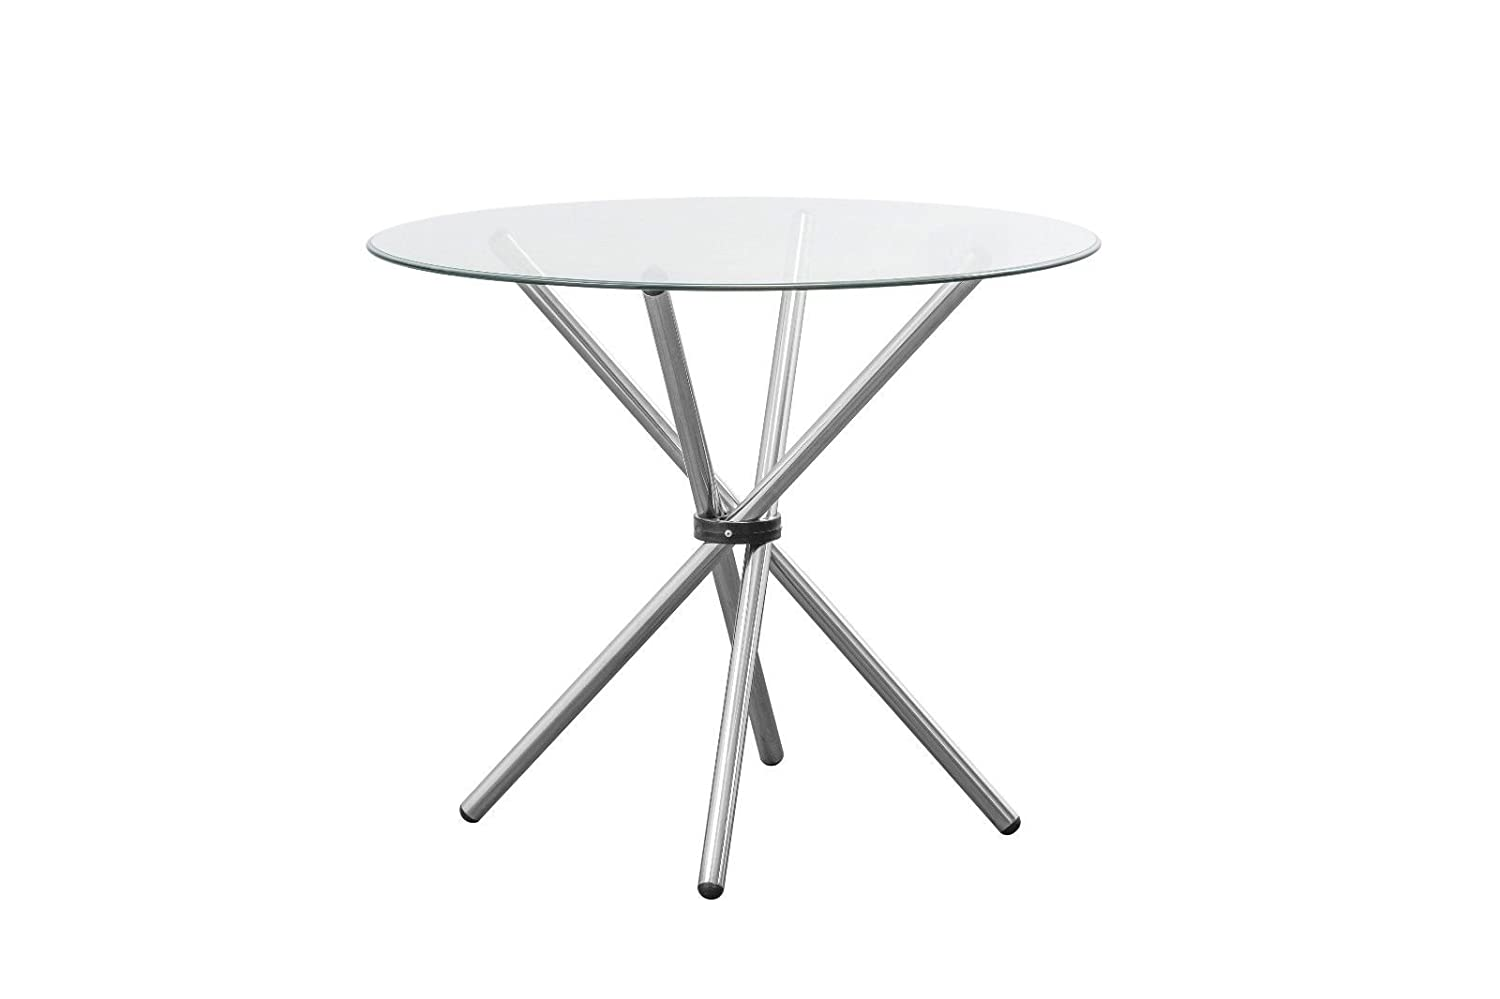 bee furniture Contemporary Modern Round Dining Table Tempered Glass Polished Chrome Legs H75cm x W90cm Free UK Mainland Delivery 12391 bee.furniture